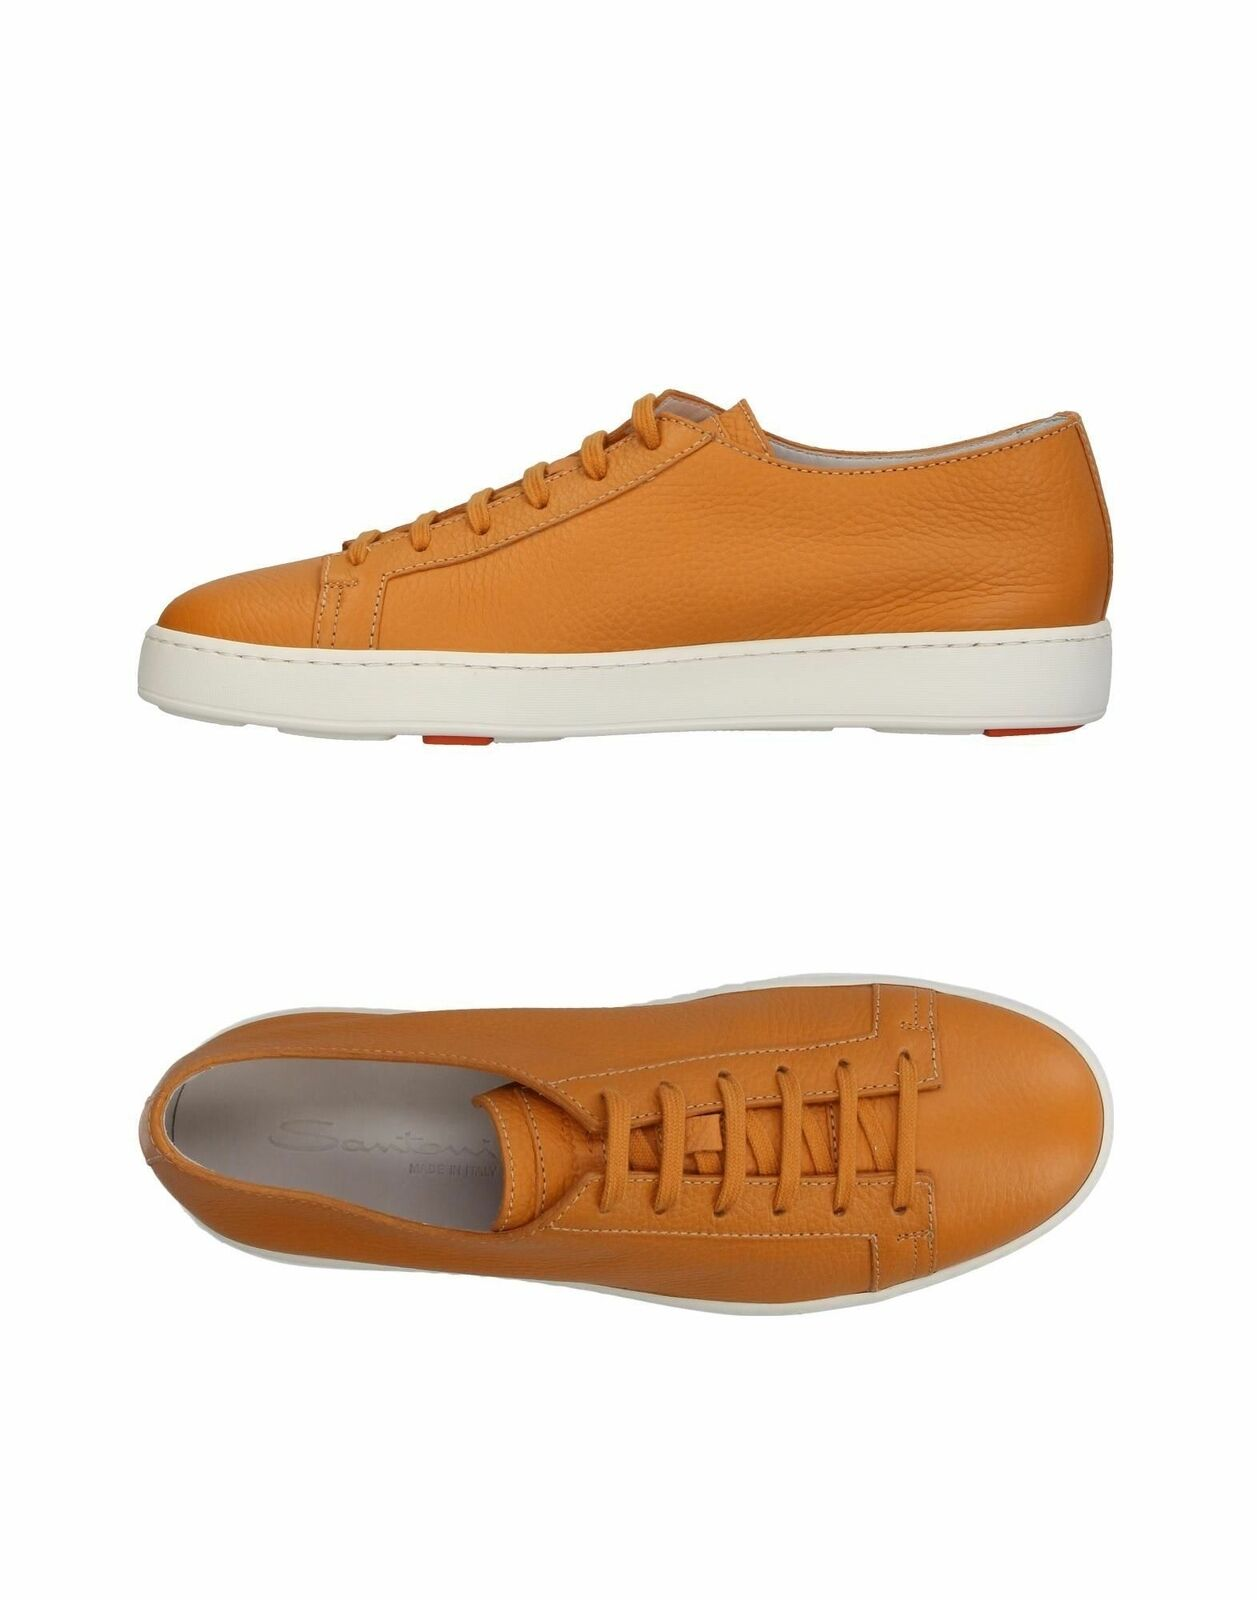 e4470c14434 SANTONI Cognac Leather shoes Hand-made in Sneakers nnwmkr8286-Casual ...